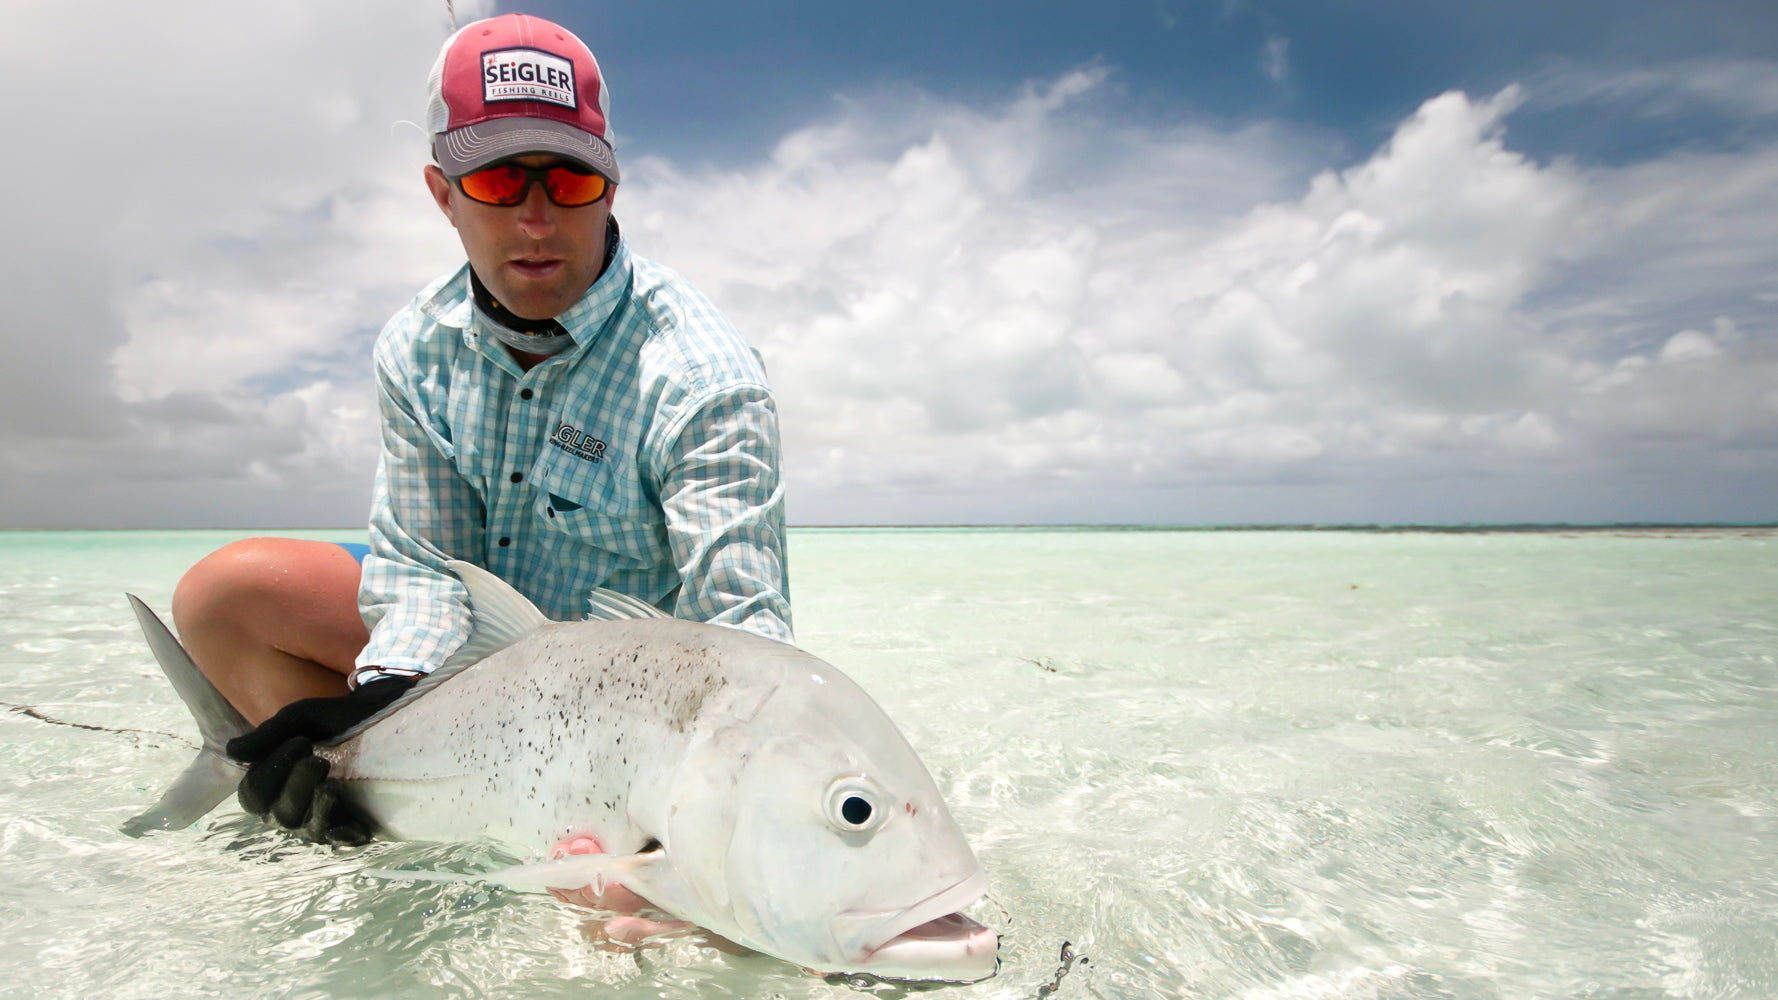 Wes Seigler holding a Giant Trevally caught on a saltwater fly reel.